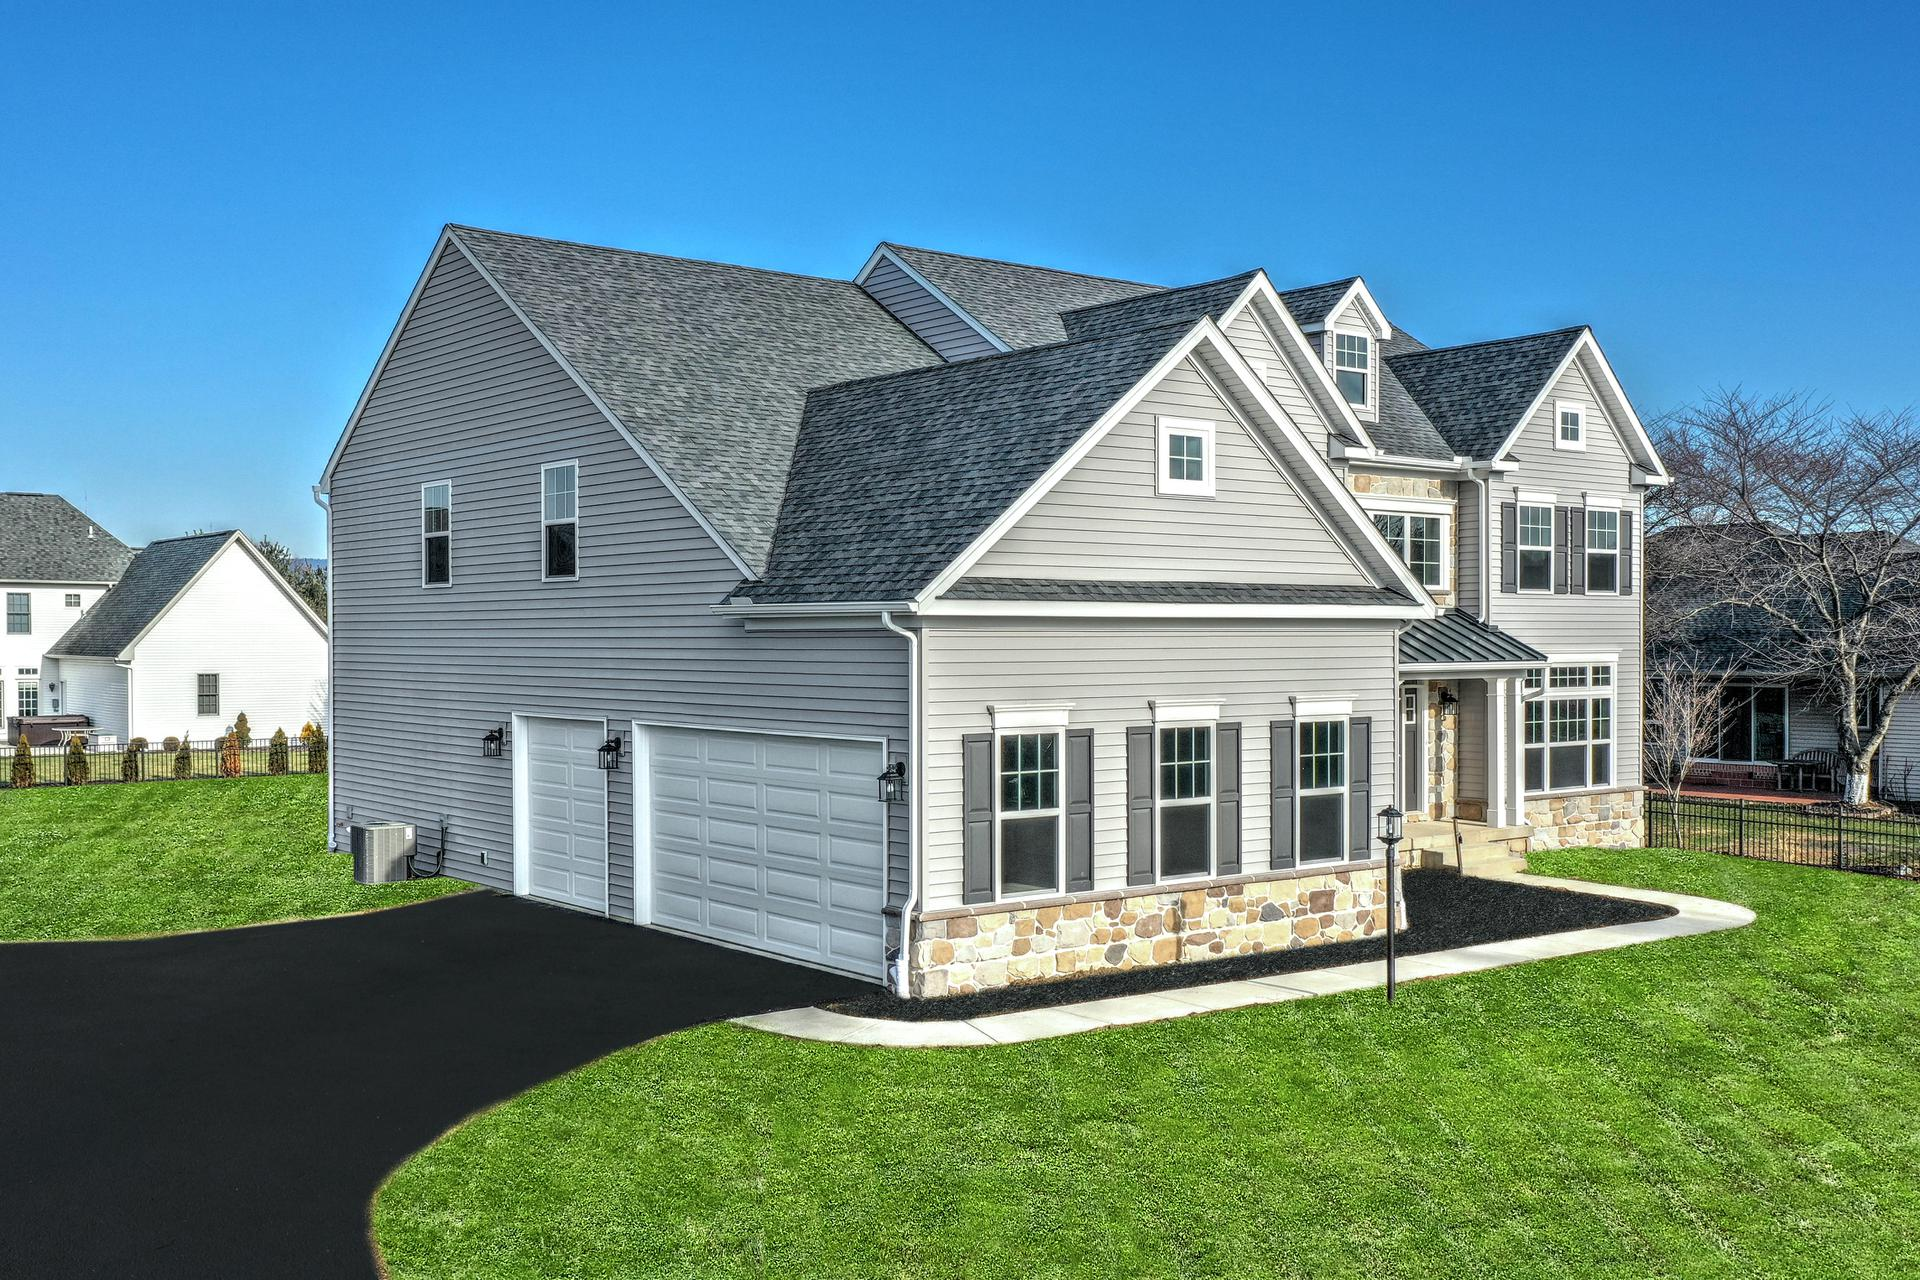 Arbor New Home in Mohnton, PA